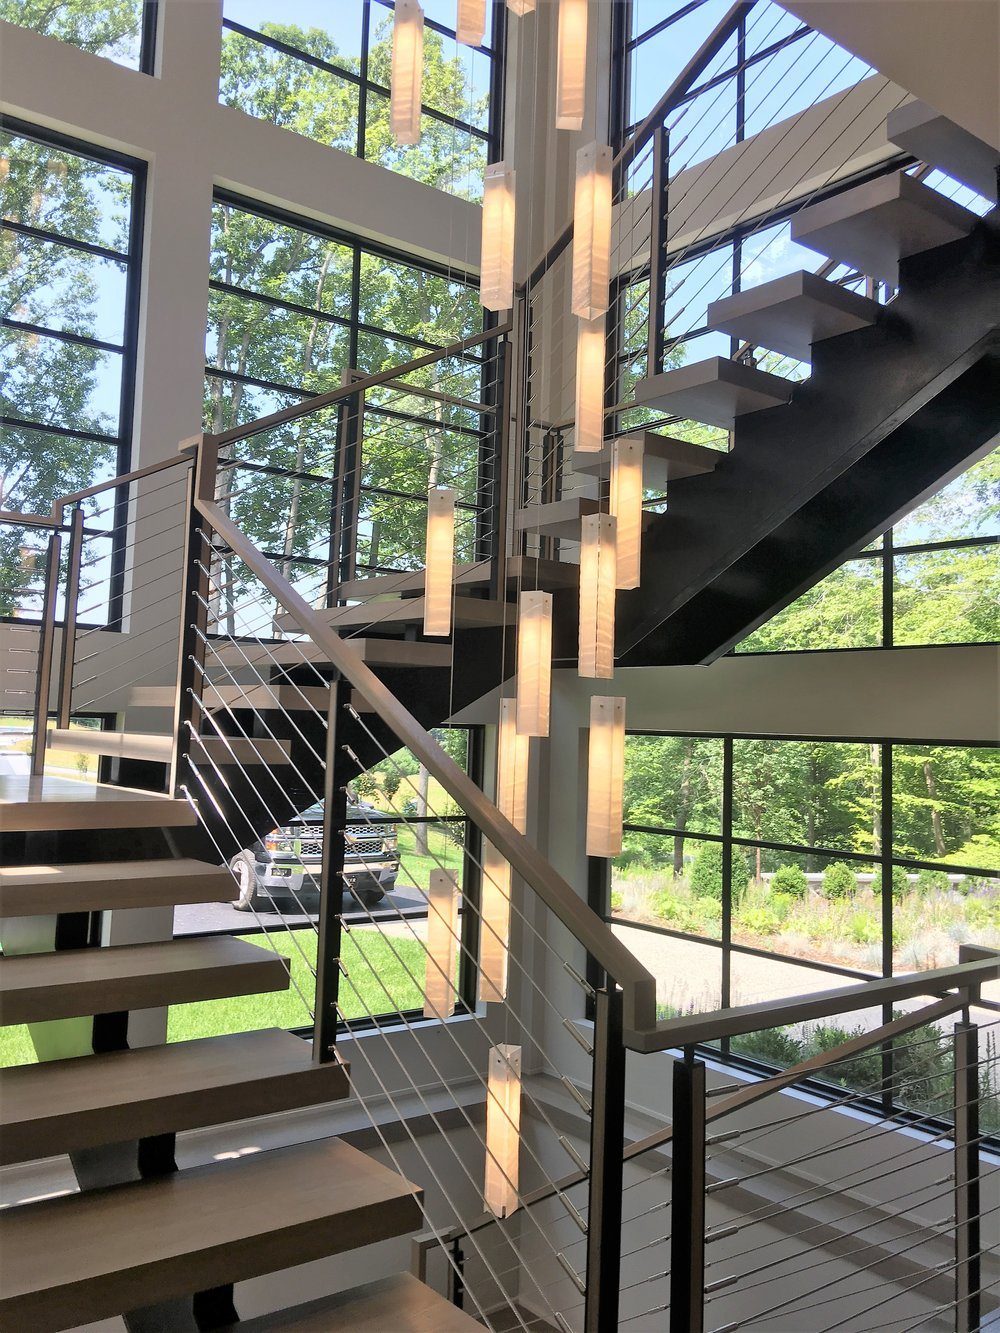 Capozzoli stairworks - Interior stair railing contractors ...